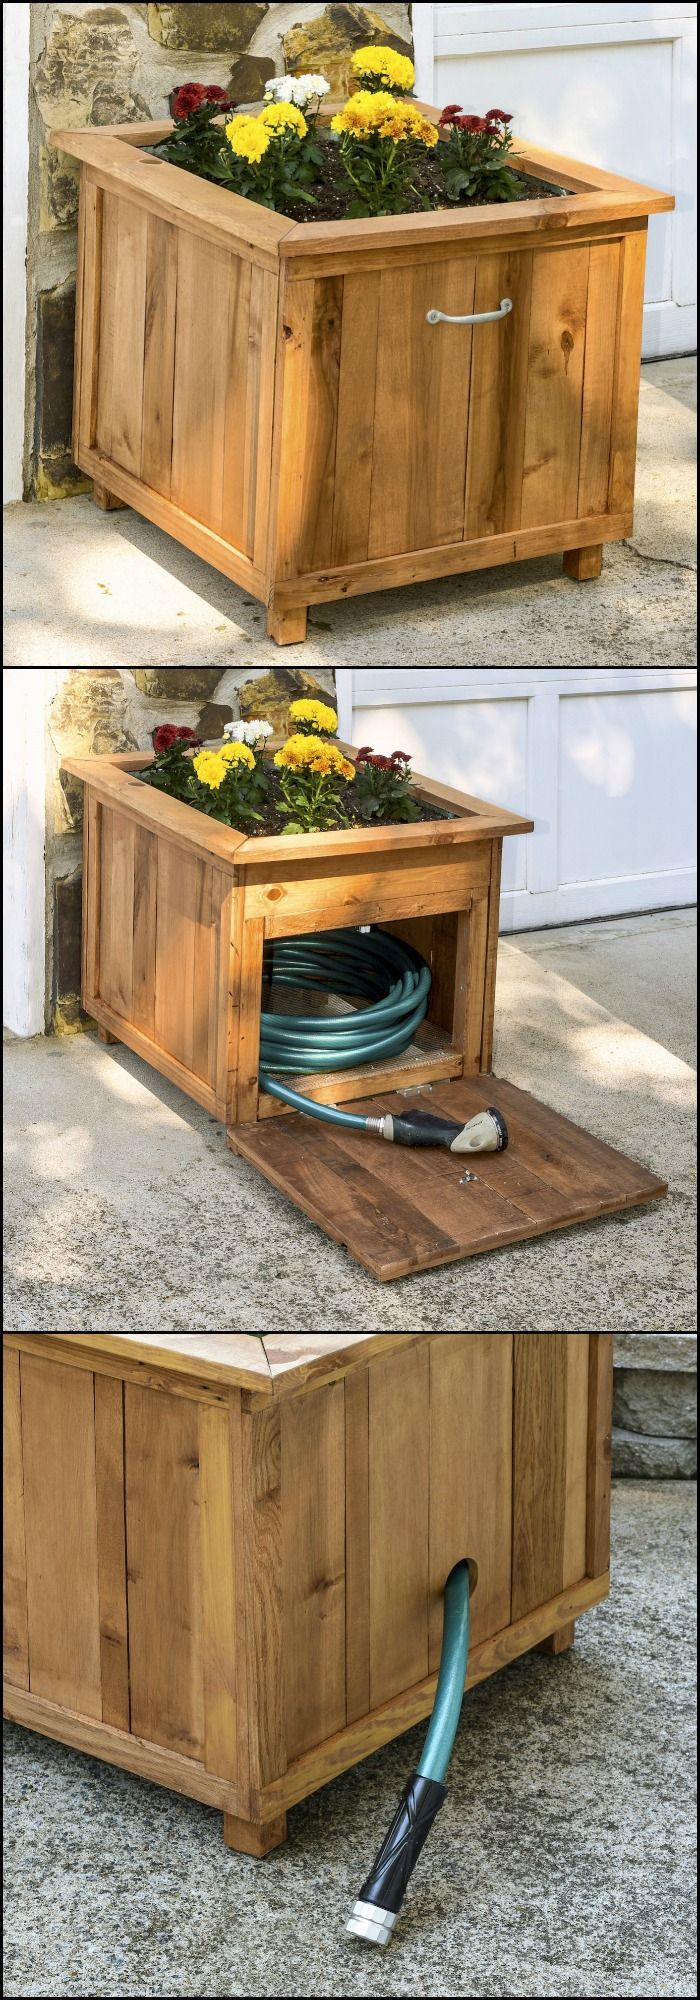 Nice Build A Garden Hose Storage With Planter!